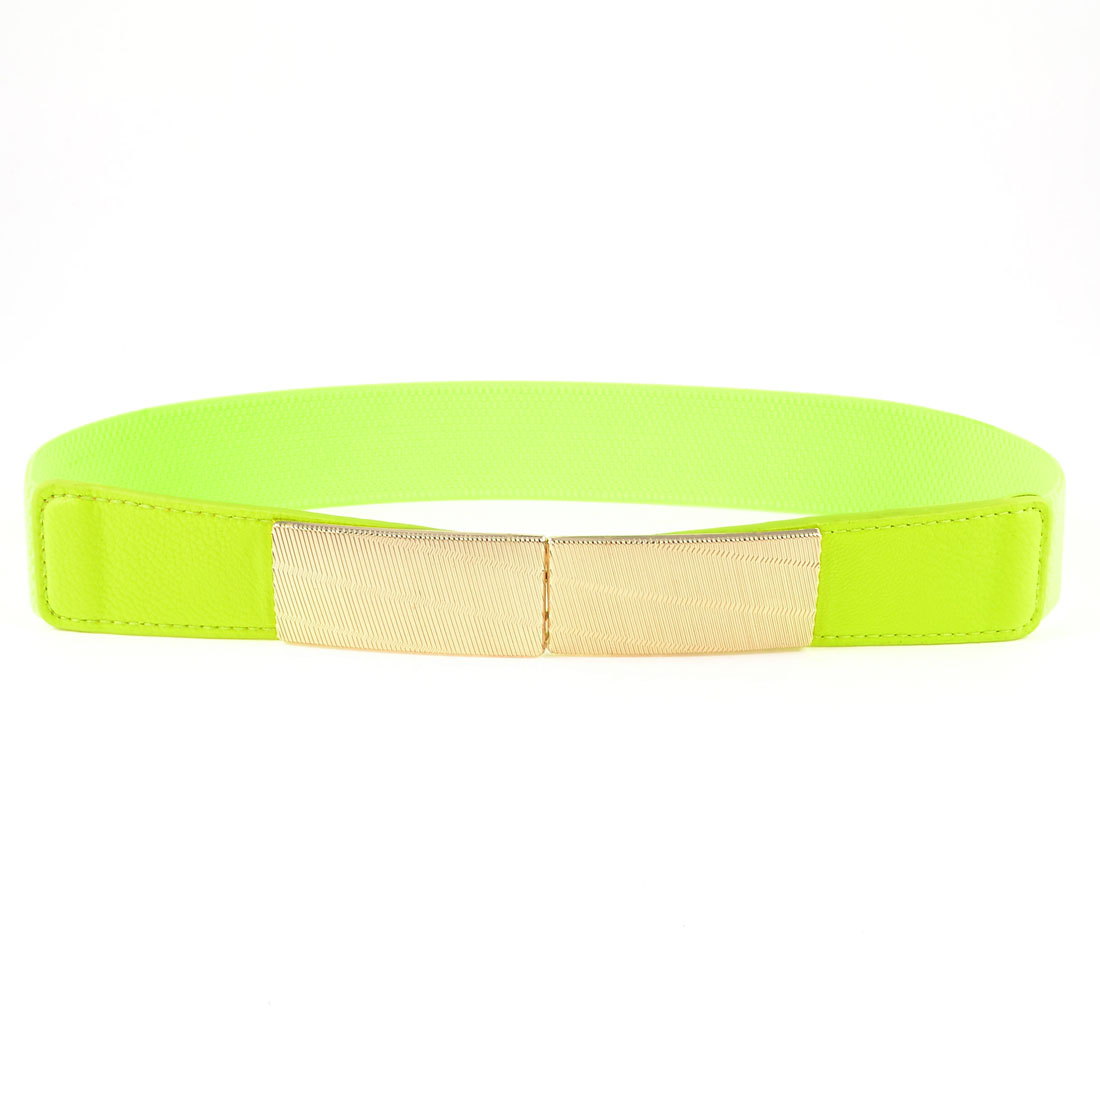 Gold Tone Interlocking Buckle Yellow Green Elastic Cinch Belt Band for Lady